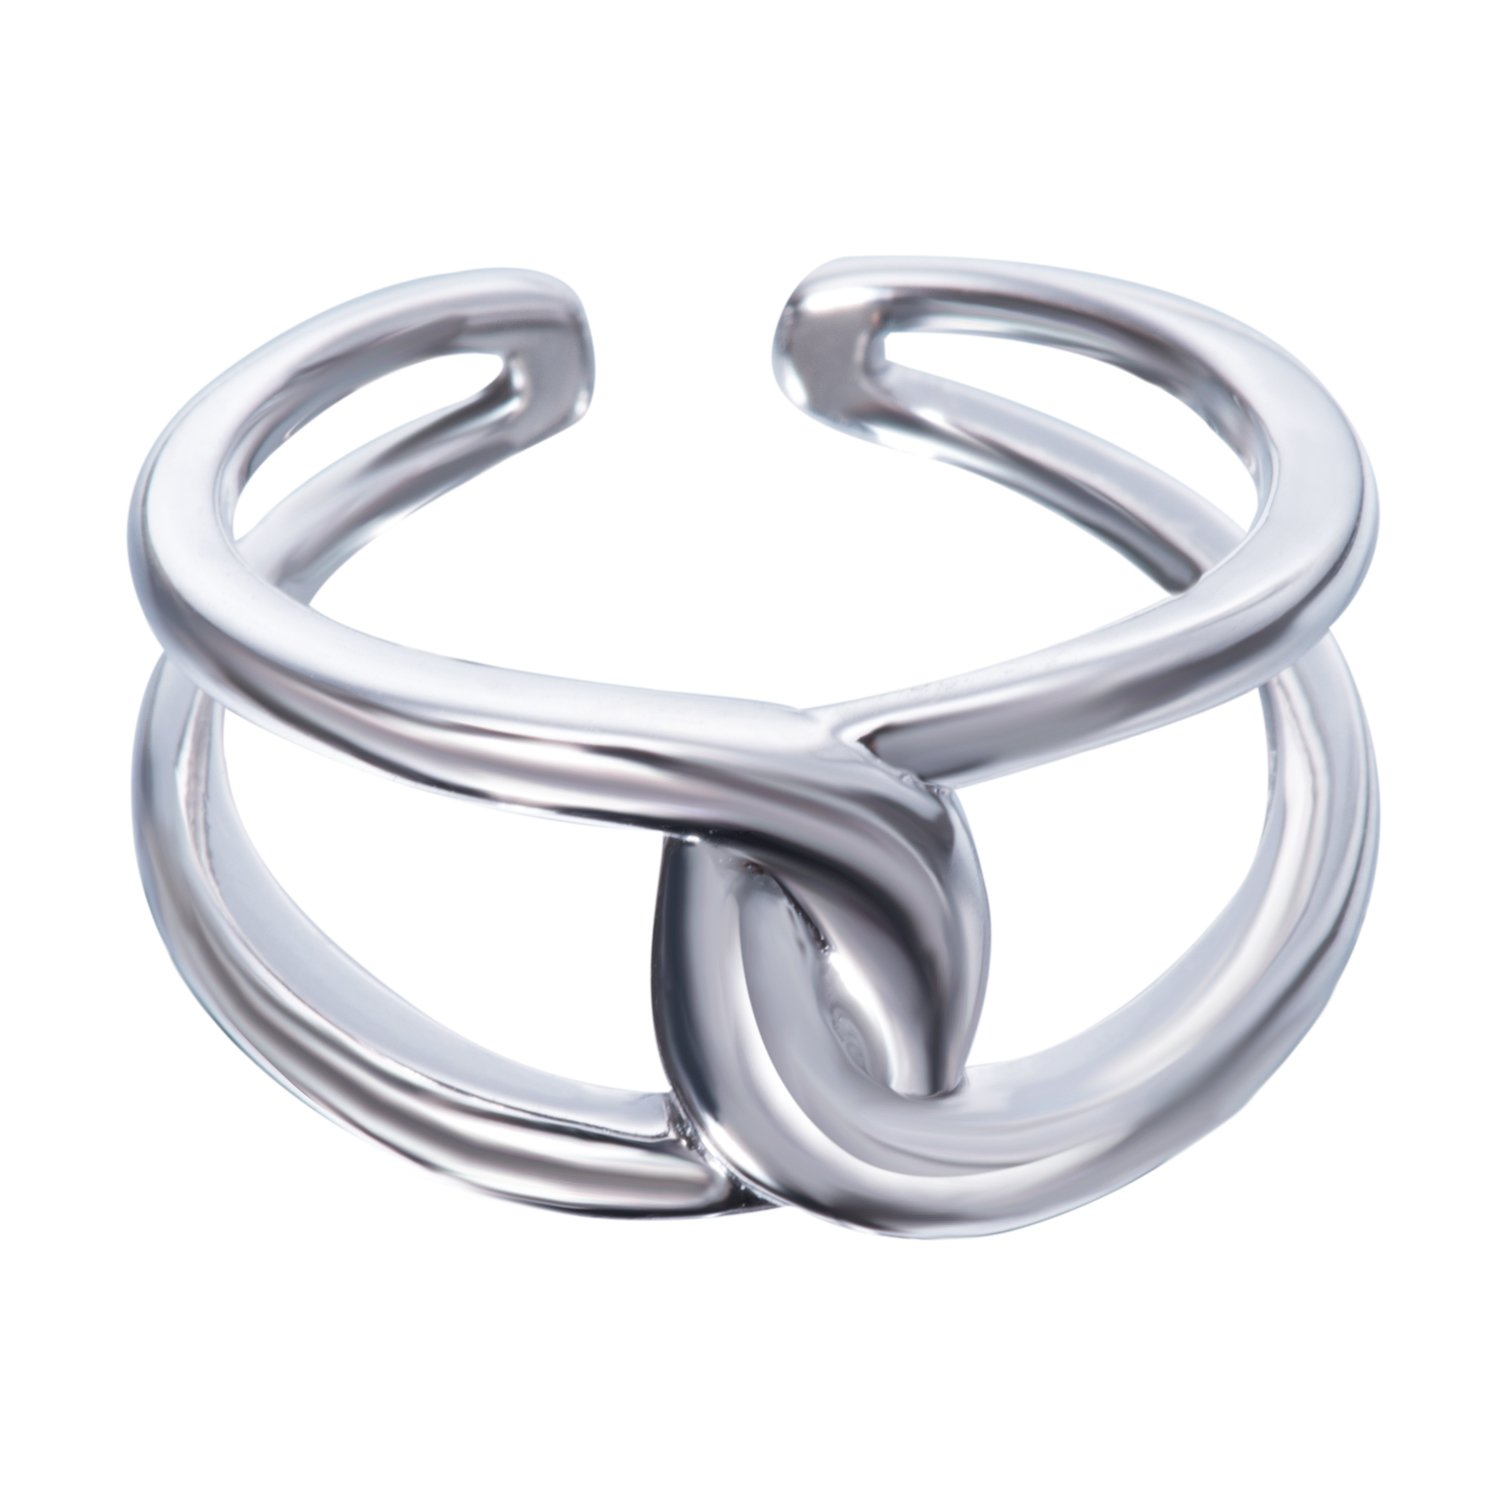 Fonsalette Gold Plated Infinity Ring Sterling Silver Open Twist Ring Two Band Ring (silver) by Fonsalette (Image #1)